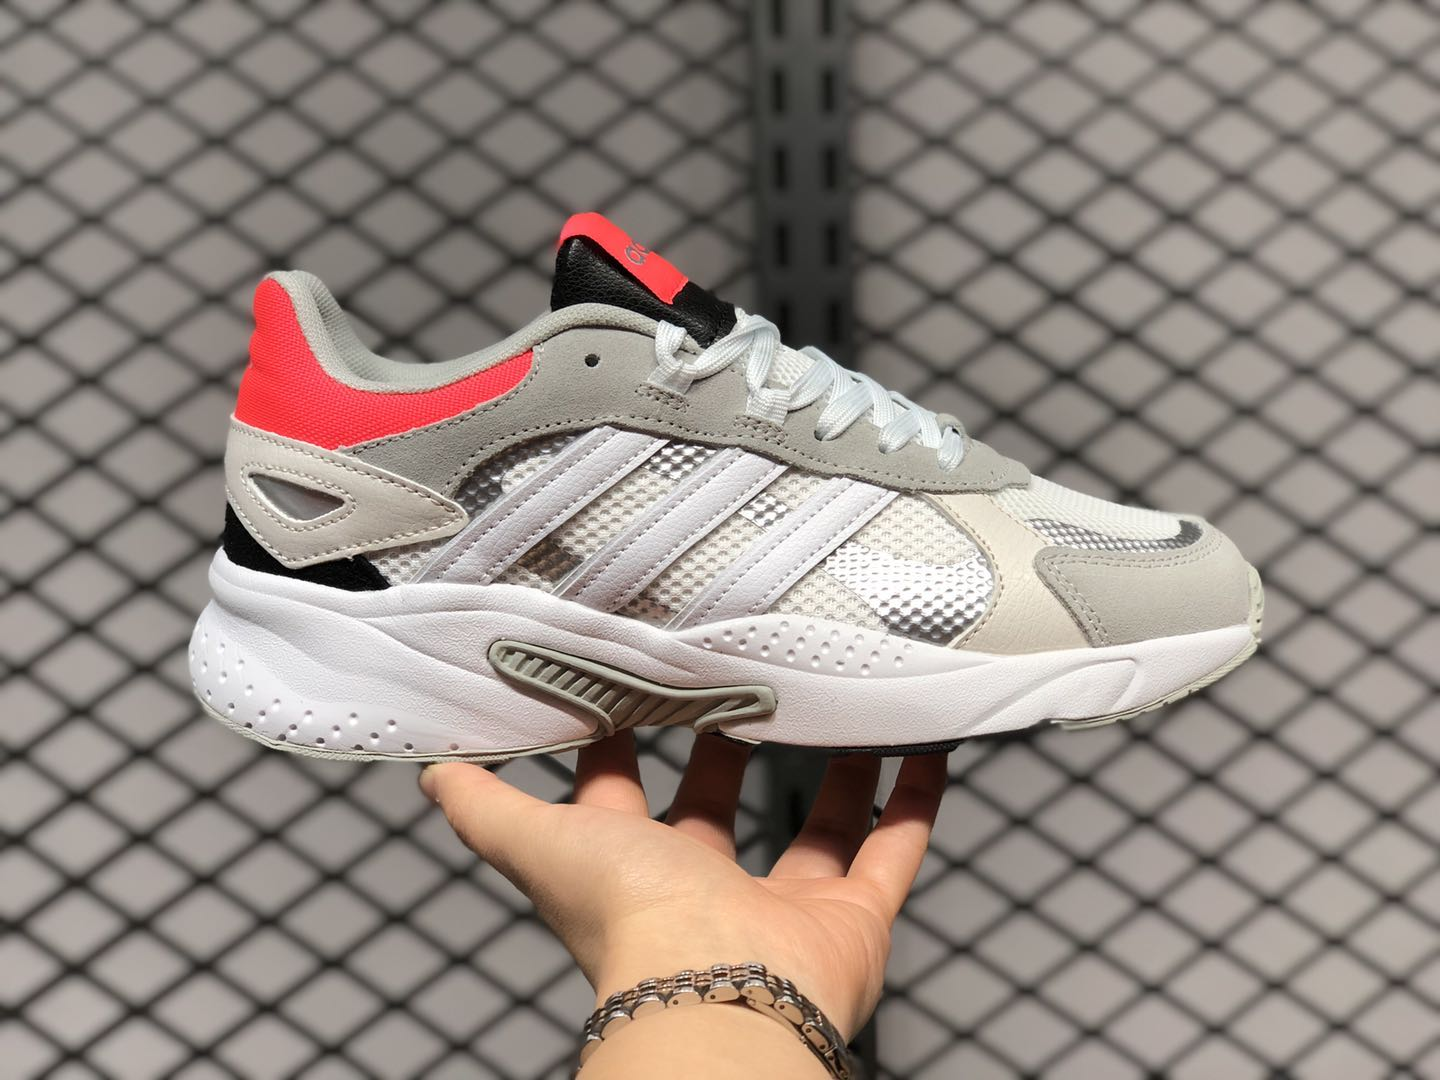 Adidas Neo Crazychaos Cloud White/Core Black-Shock Red FY7822